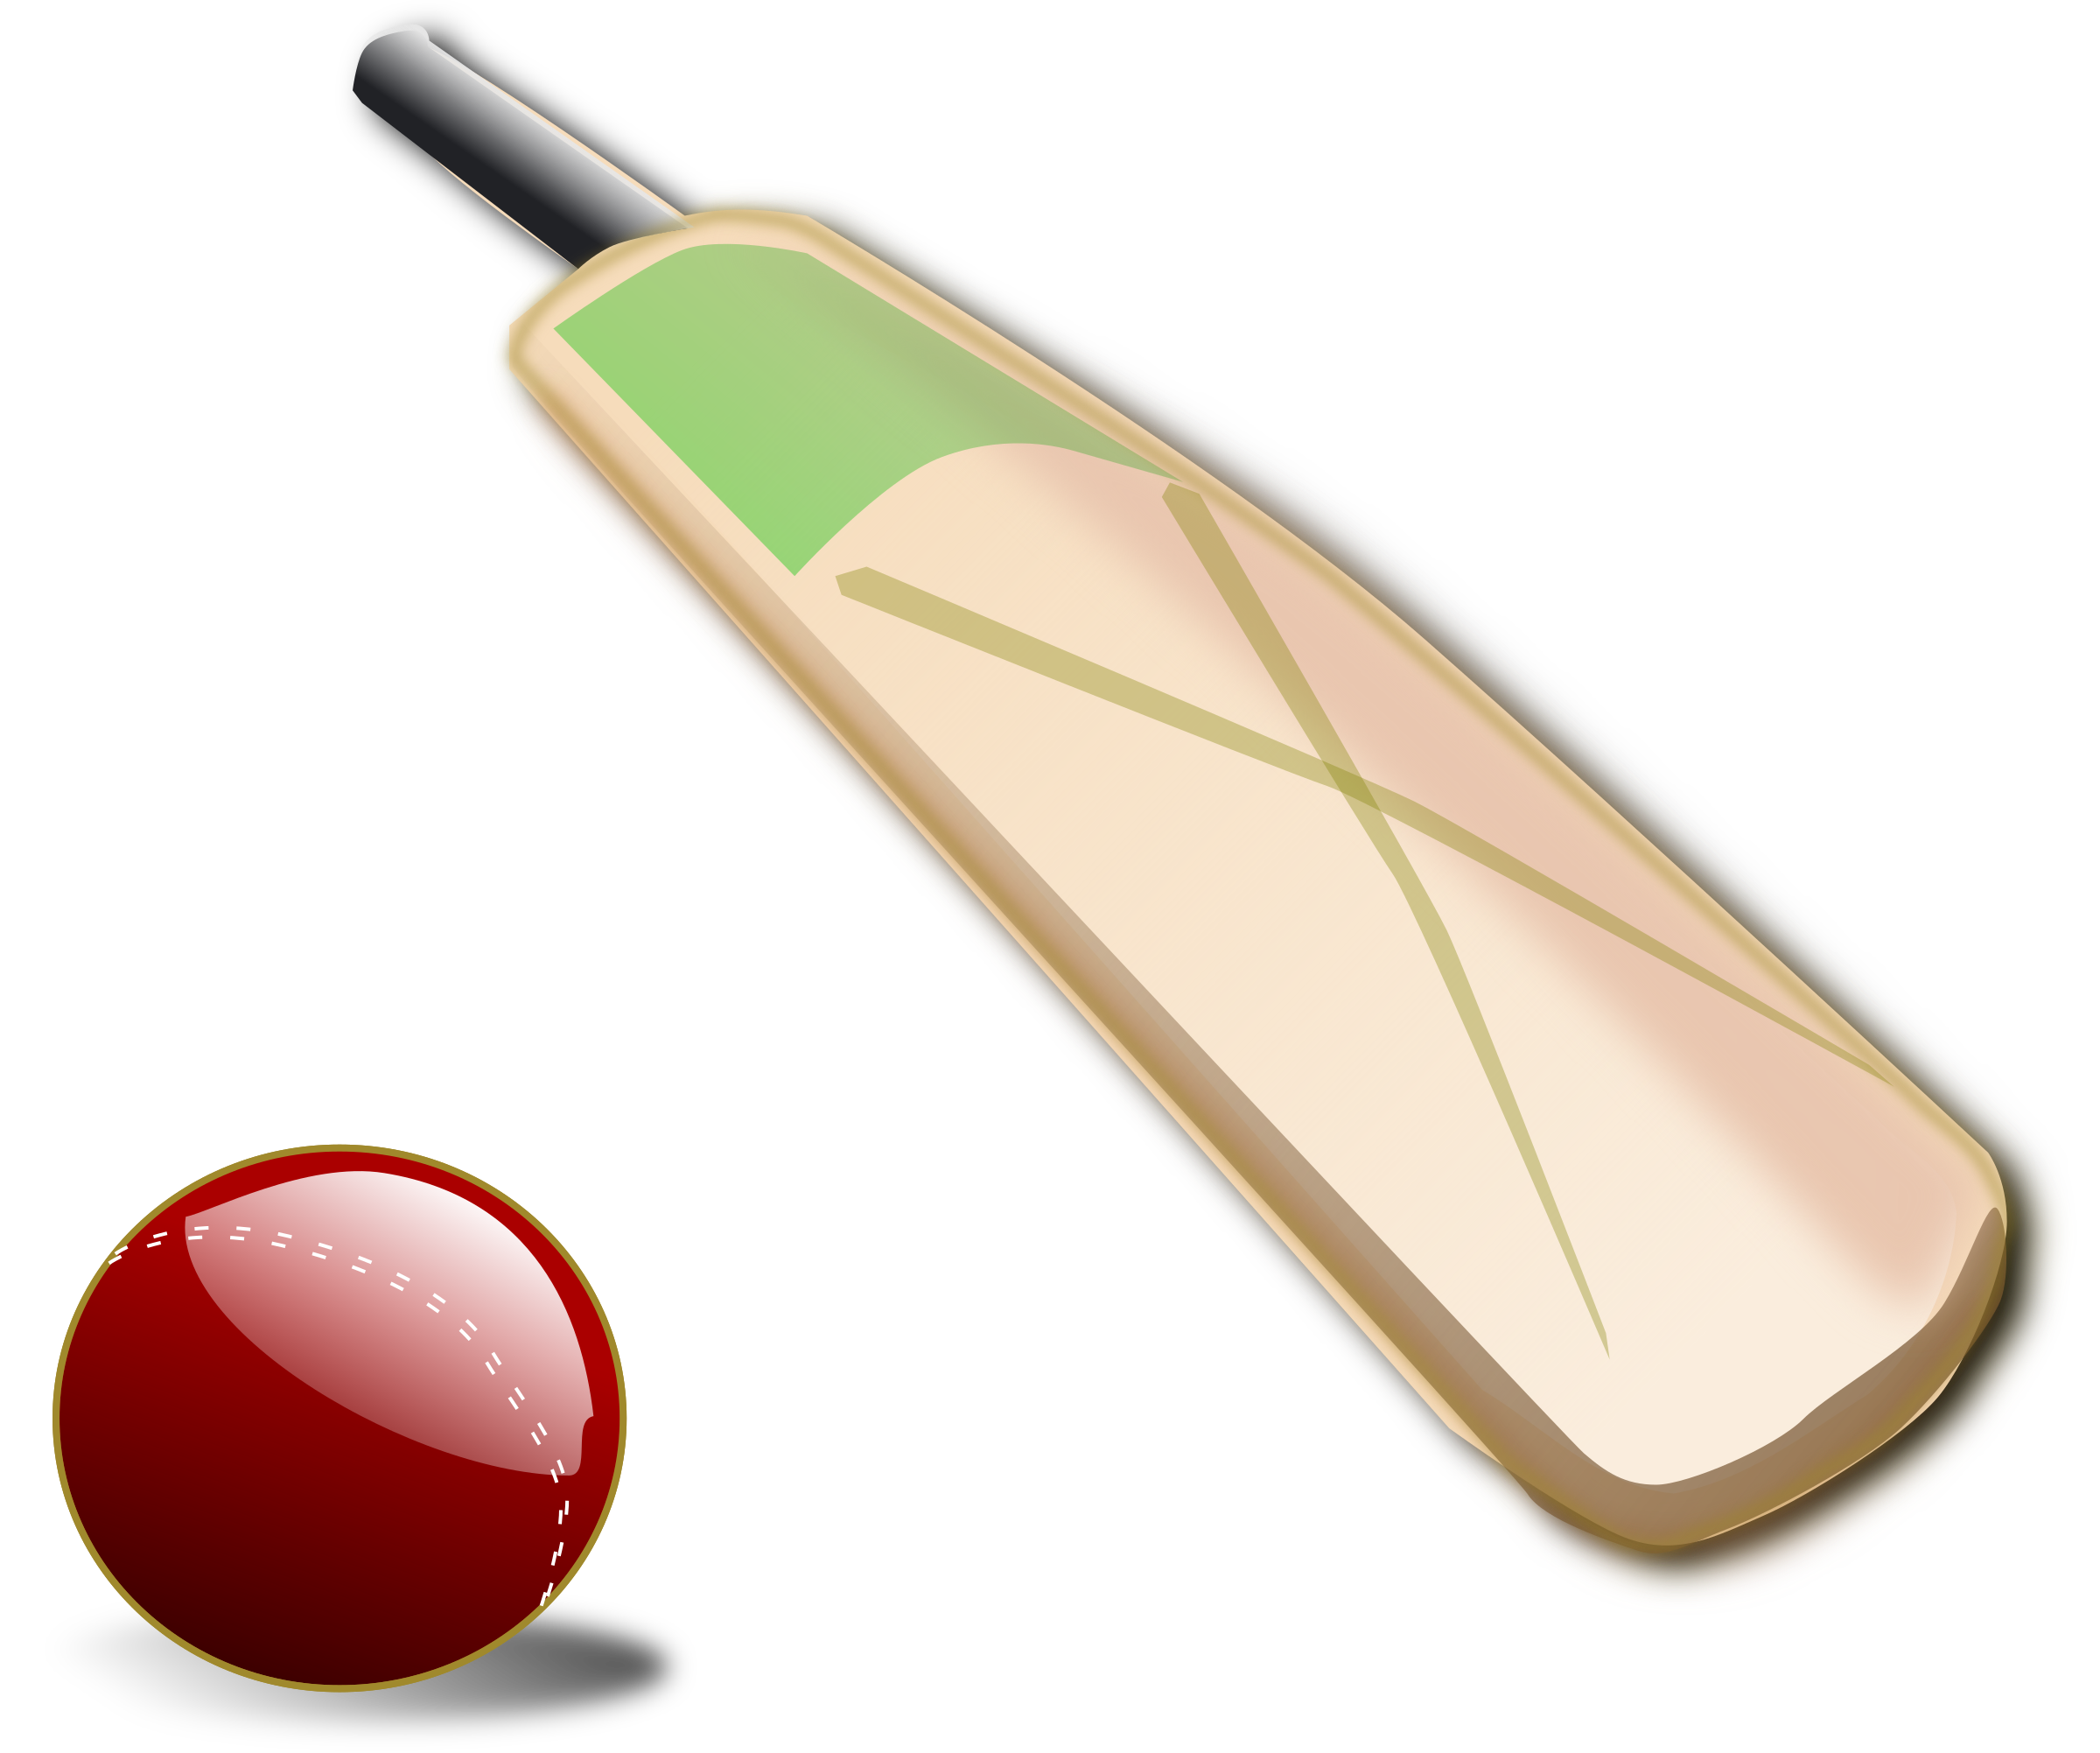 picture royalty free Broken clipart cricket bat. Ball and big image